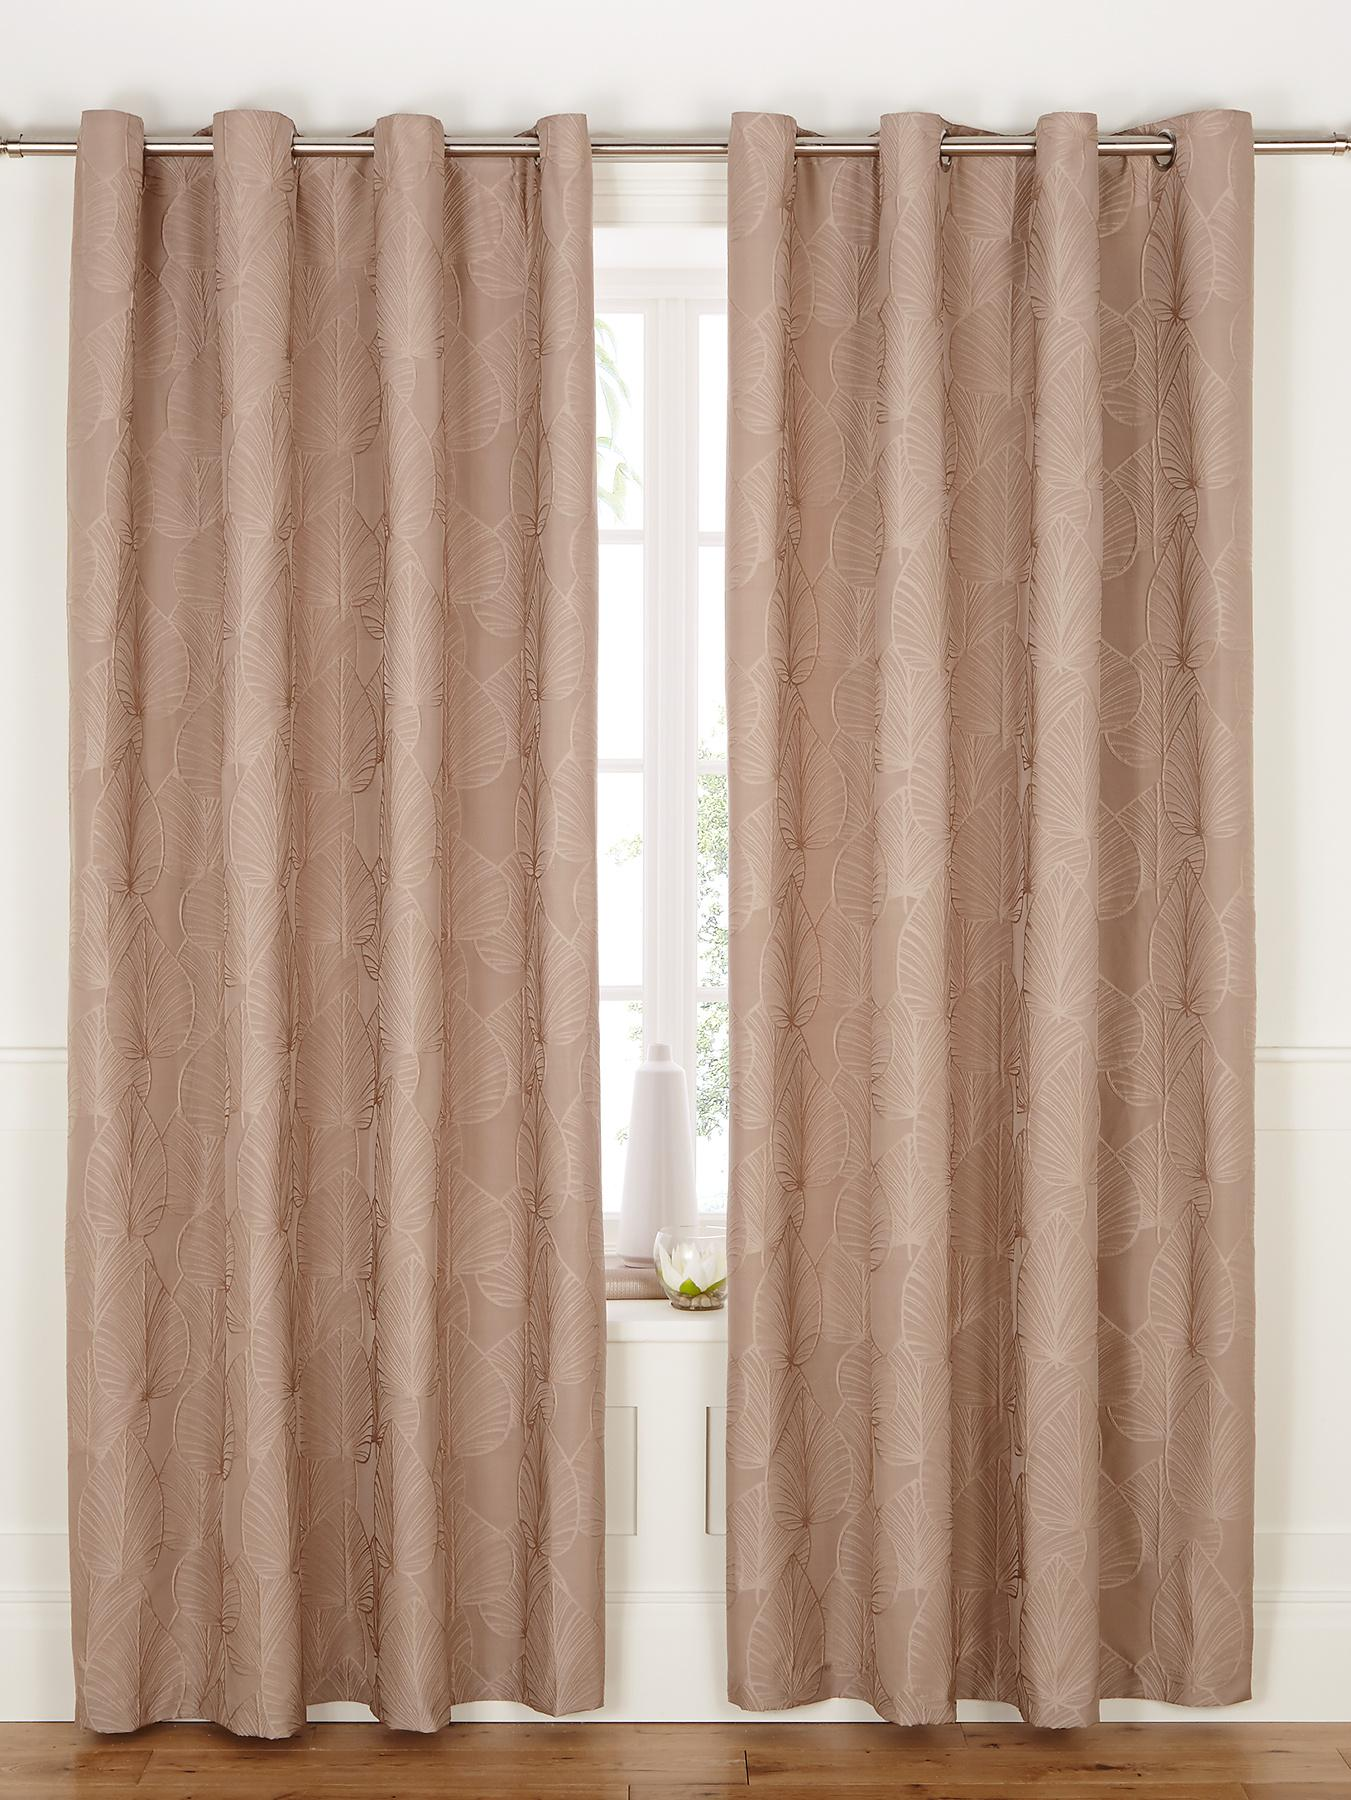 Soller Eyelet Curtains, Charcoal